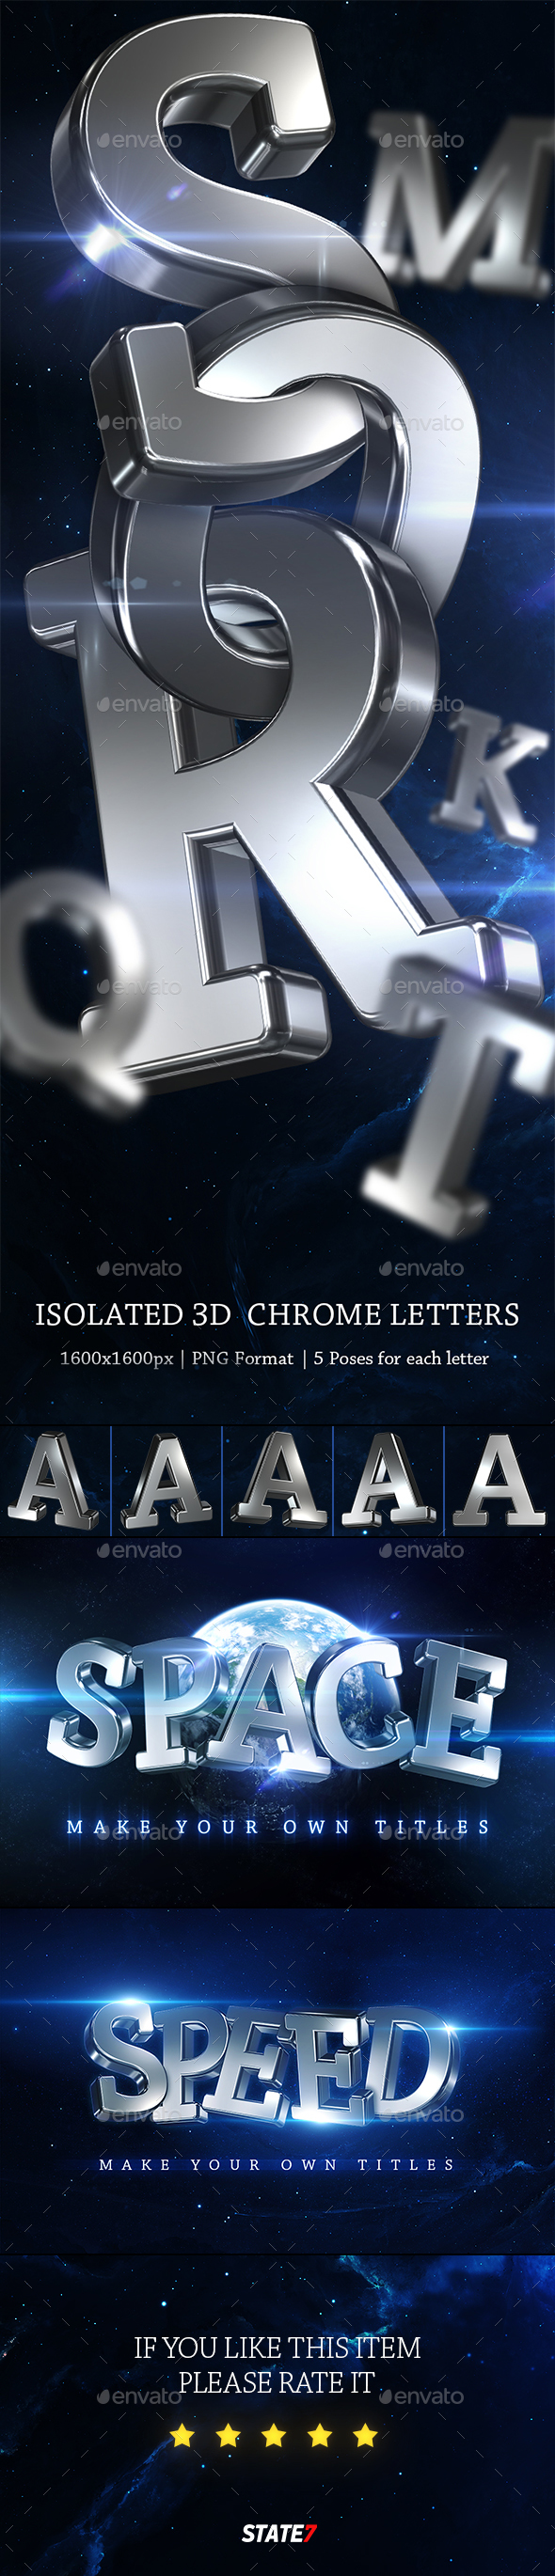 GraphicRiver 3D Chrome Letters 20701588